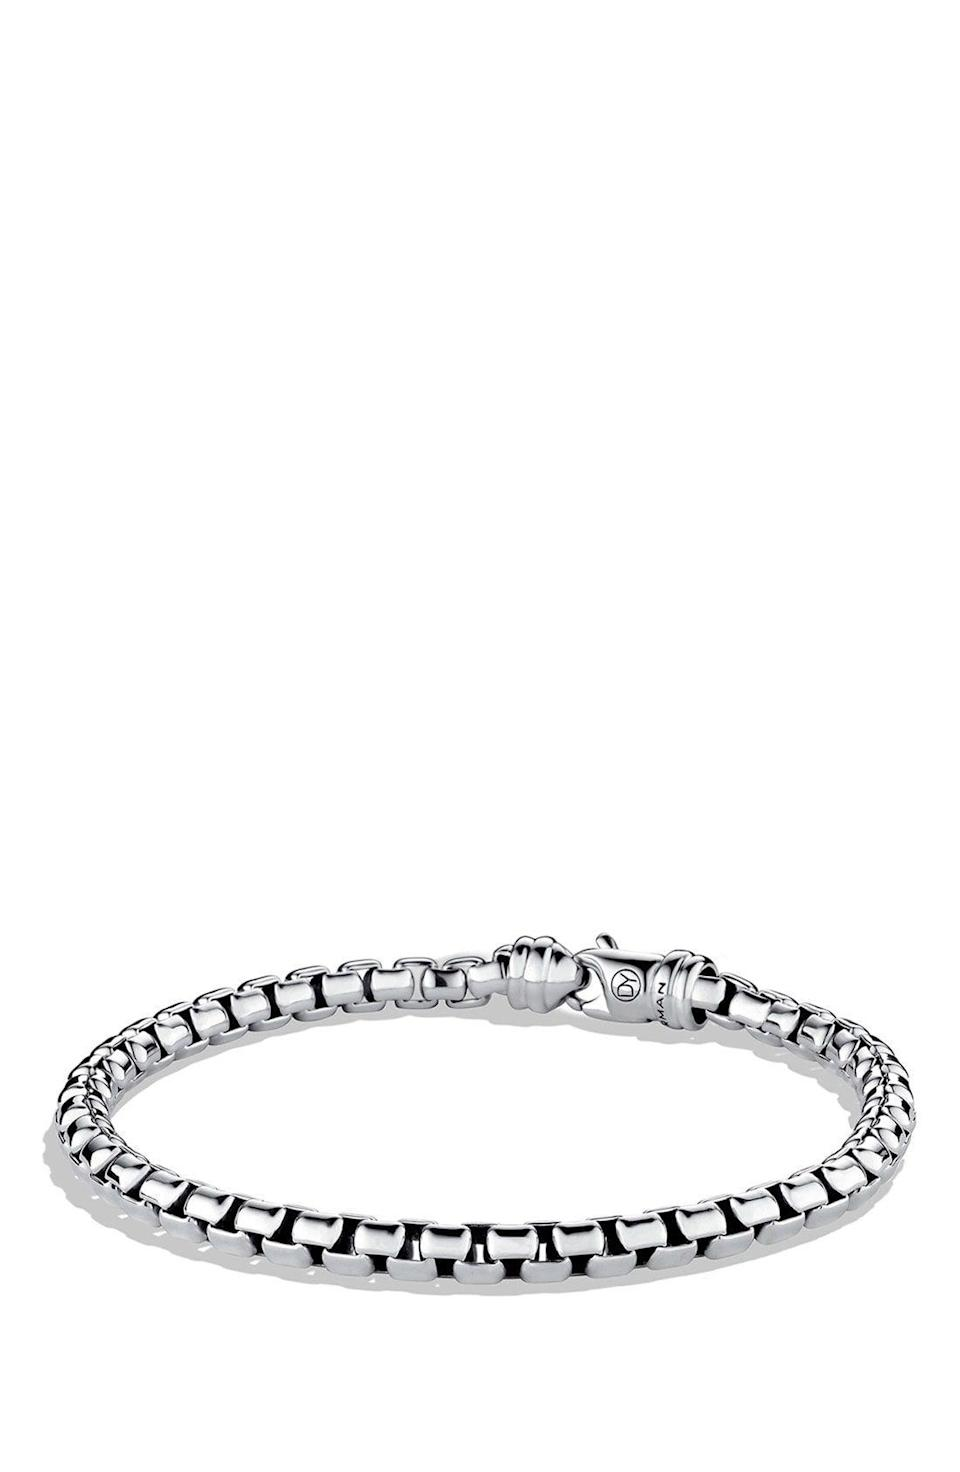 "<p><strong>David Yurman</strong></p><p>nordstrom.com</p><p><strong>$325.00</strong></p><p><a href=""https://go.redirectingat.com?id=74968X1596630&url=https%3A%2F%2Fshop.nordstrom.com%2Fs%2Fdavid-yurman-chain-large-link-box-chain-bracelet%2F3854595&sref=https%3A%2F%2Fwww.harpersbazaar.com%2Ffashion%2Ftrends%2Fg4473%2Fmens-holiday-gift-guide%2F"" rel=""nofollow noopener"" target=""_blank"" data-ylk=""slk:SHOP NOW"" class=""link rapid-noclick-resp"">SHOP NOW</a></p><p>Sleek, simple, and timeless, this wrist piece is a wardrobe essential. </p>"